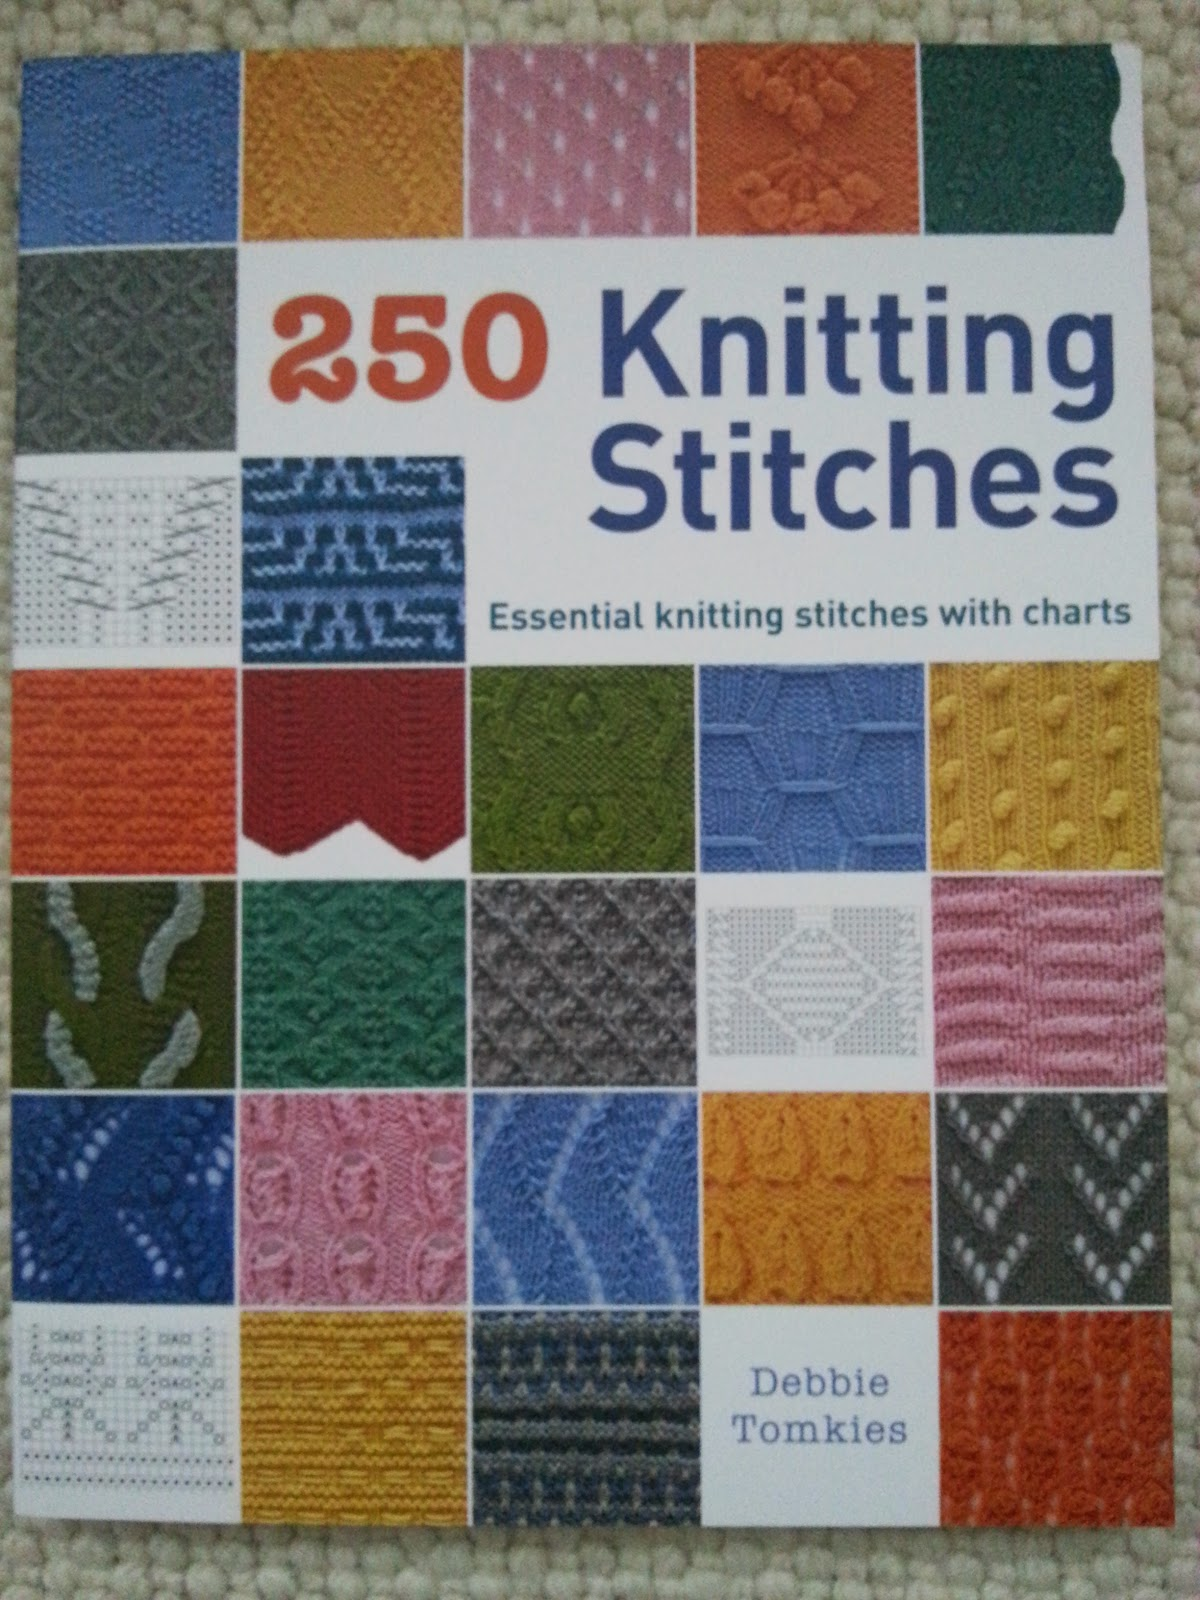 Knit Stitch Dictionary By Debbie Tomkies : Hue & Dye: New year new book! - 250 Knitting Stitches by Debbie Tomkies